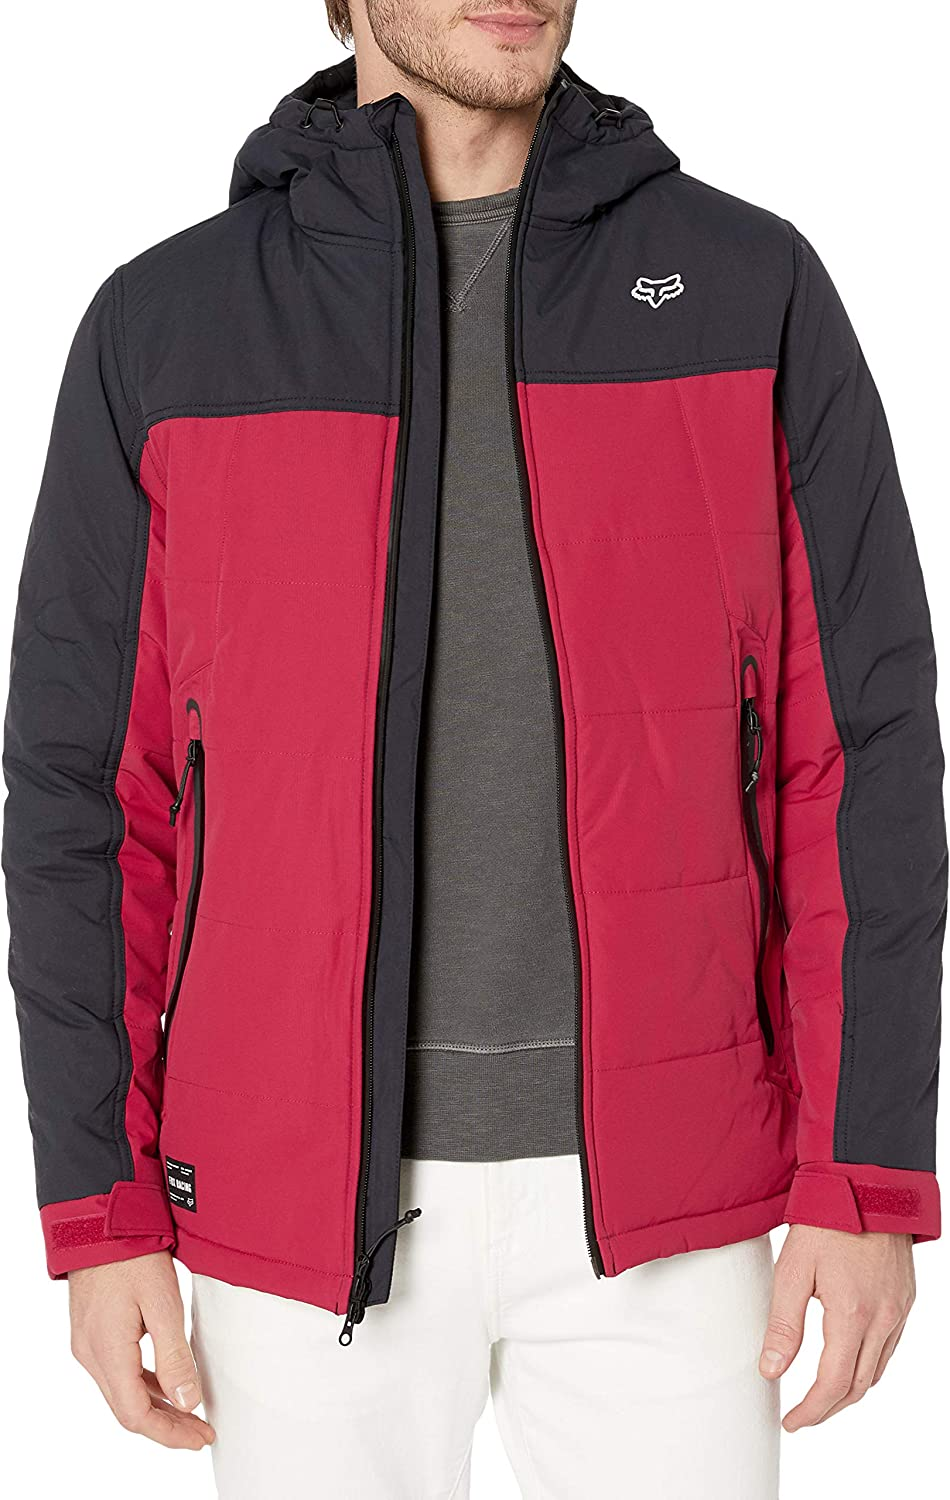 Fox Racing mens Insulated Jacket